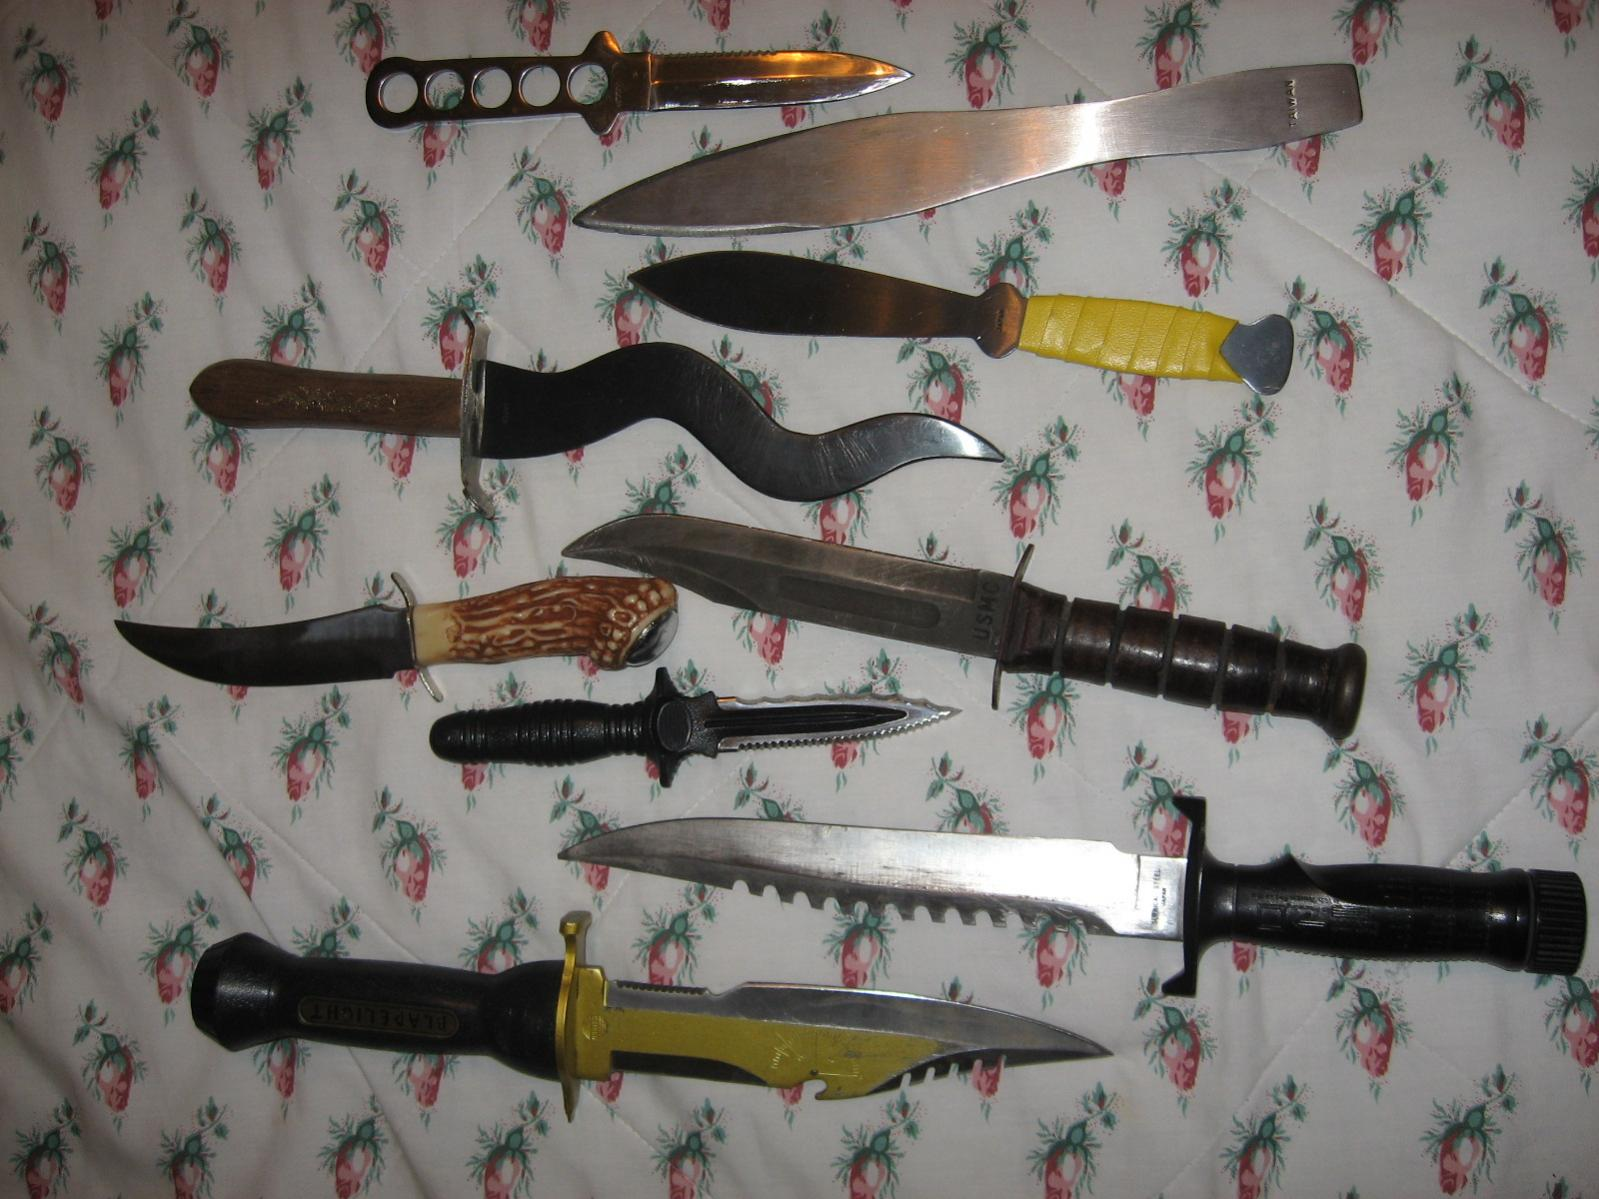 Let's See Your Knife Collection-img_2755.jpg